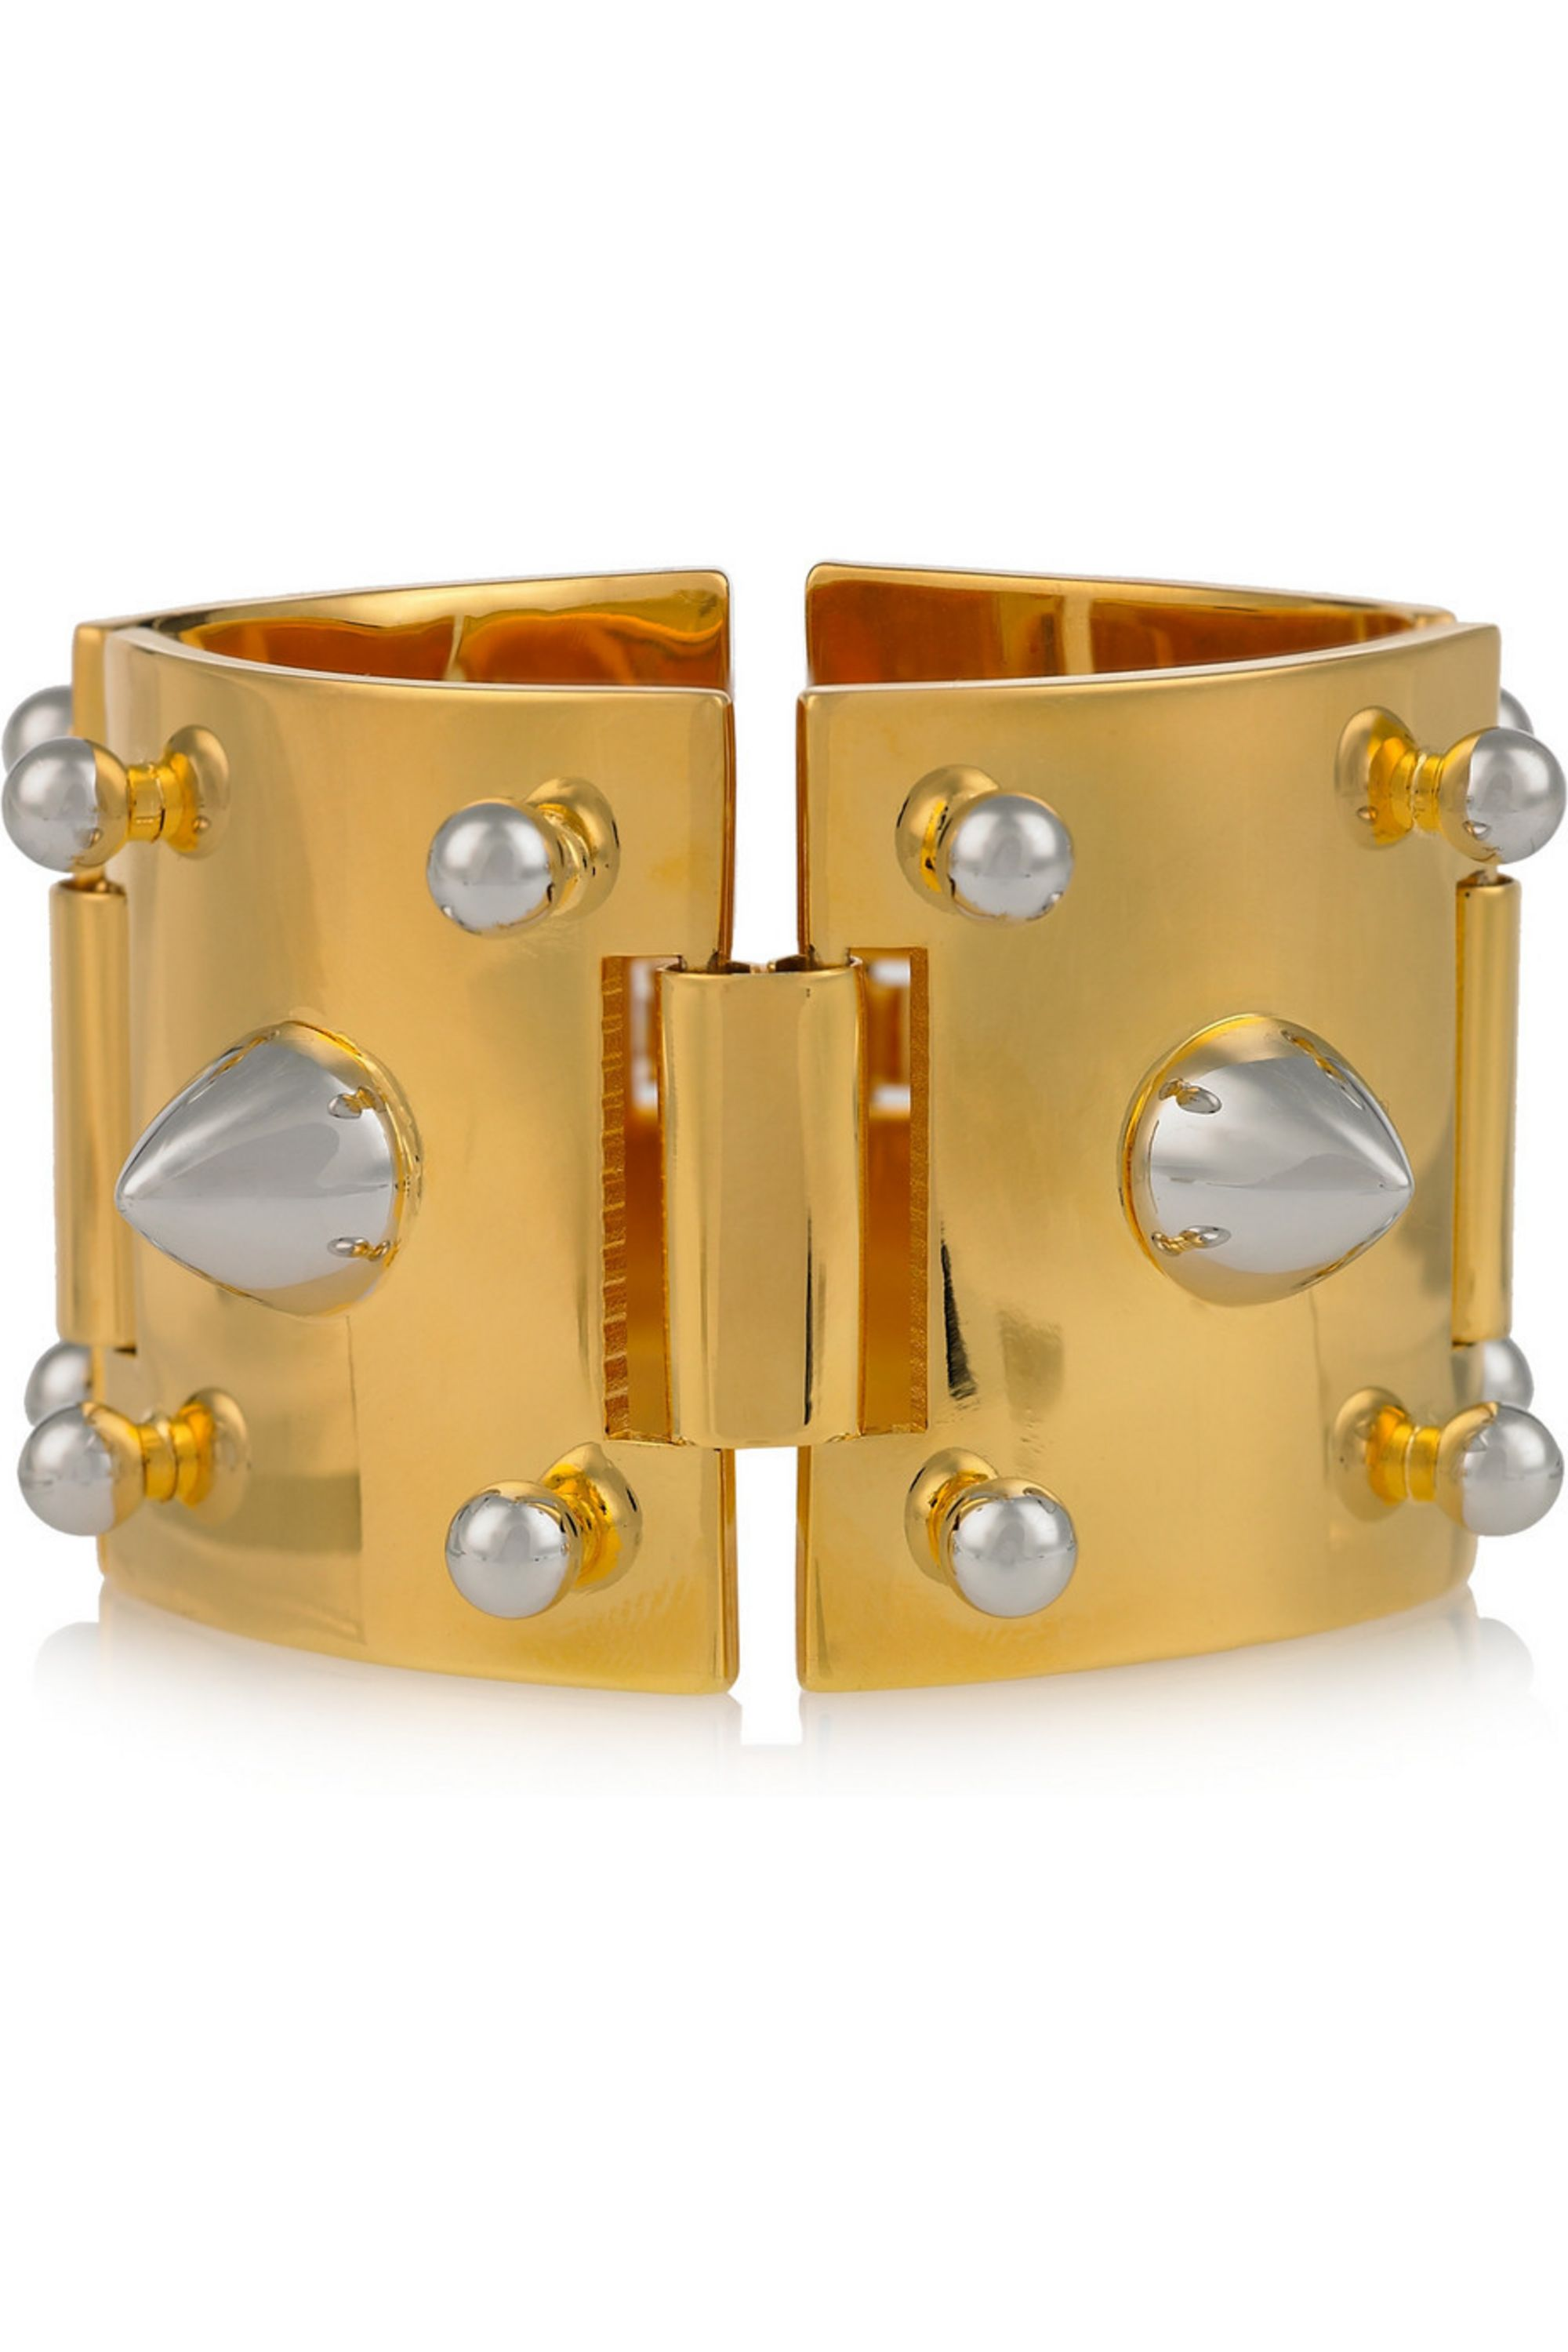 Eddie Borgo Gold-plated and silver-plated studded bracelet